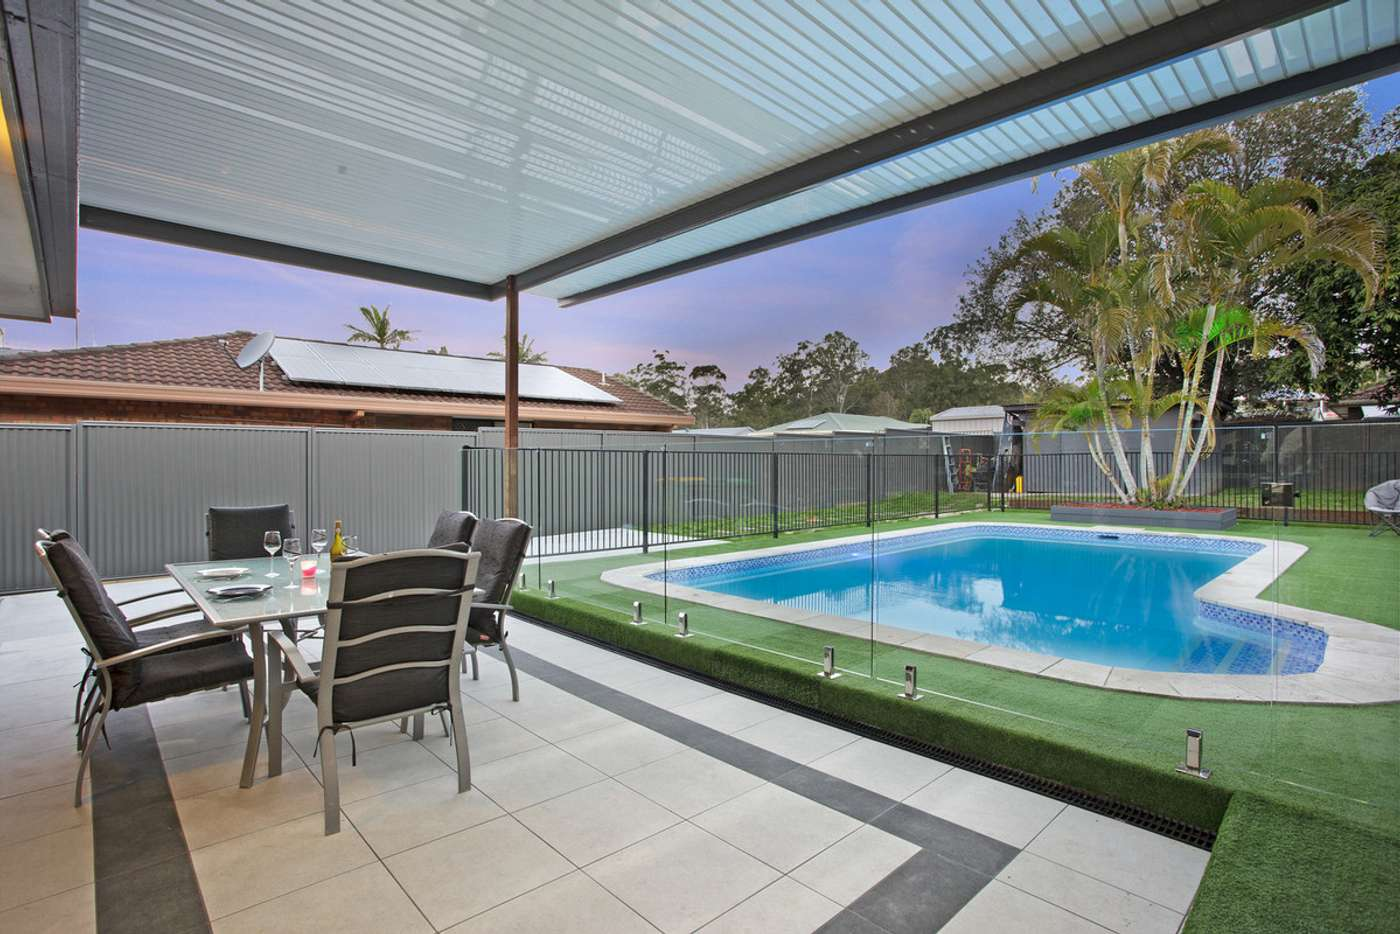 Main view of Homely house listing, 5 Dugandan Street, Nerang QLD 4211